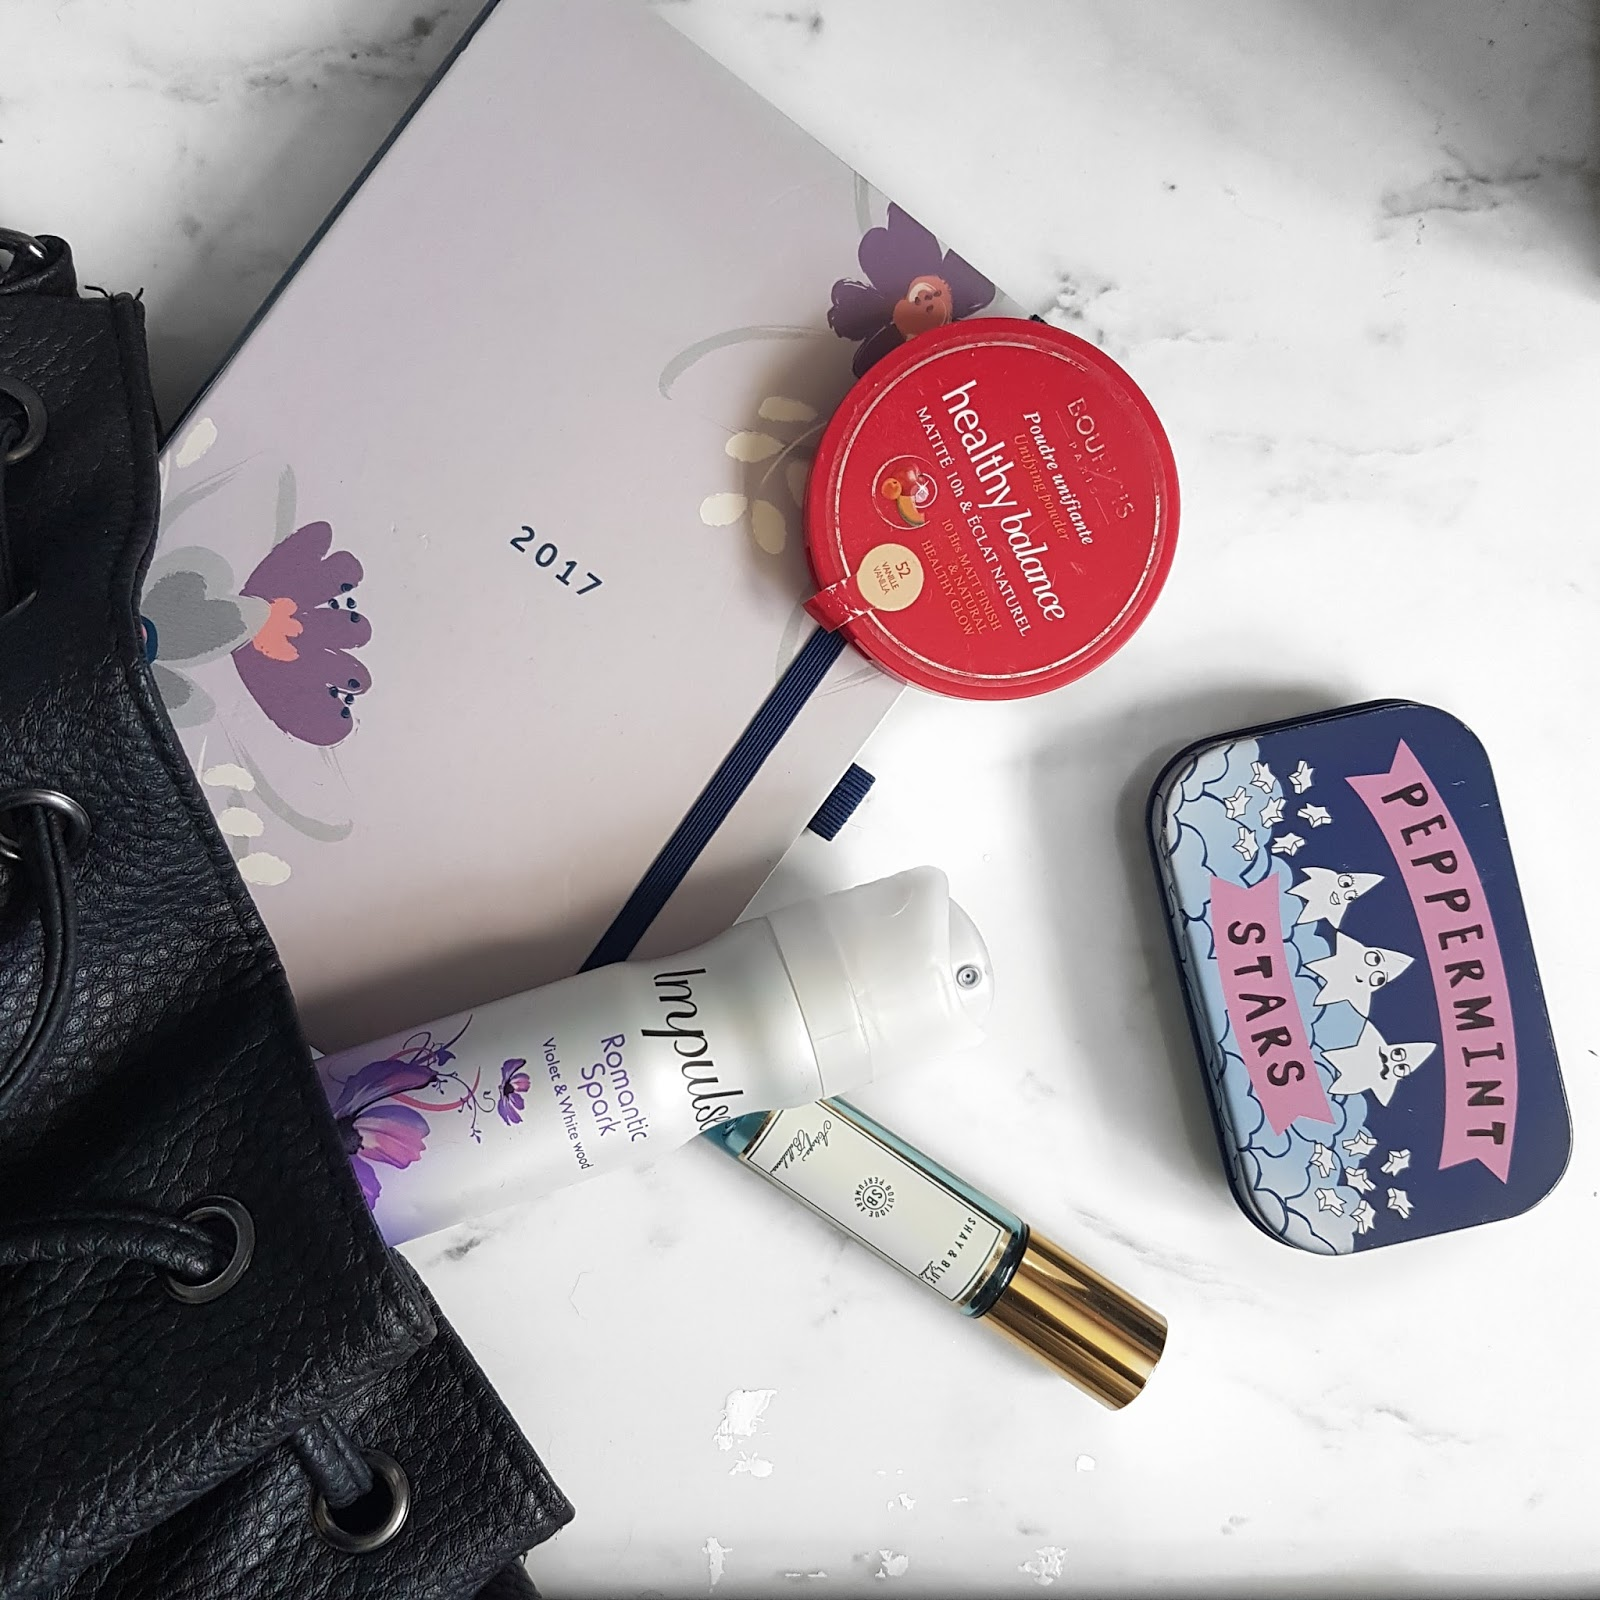 Assortment of beauty products spilling out of a handbag